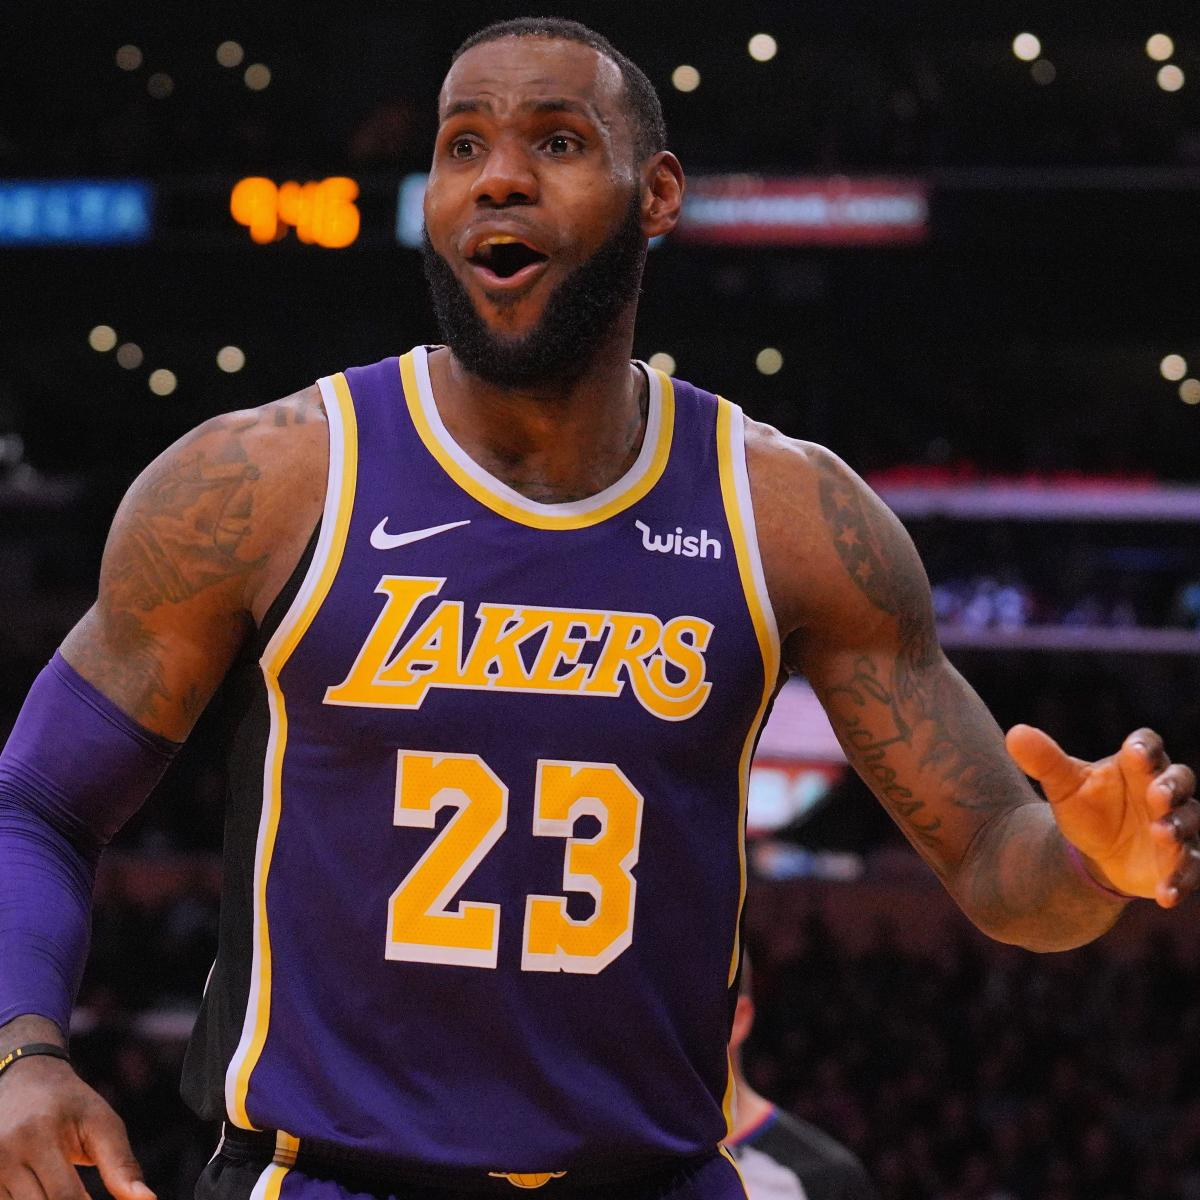 Lakers' LeBron James on Criticism: 'I'm a Staple in This Game'